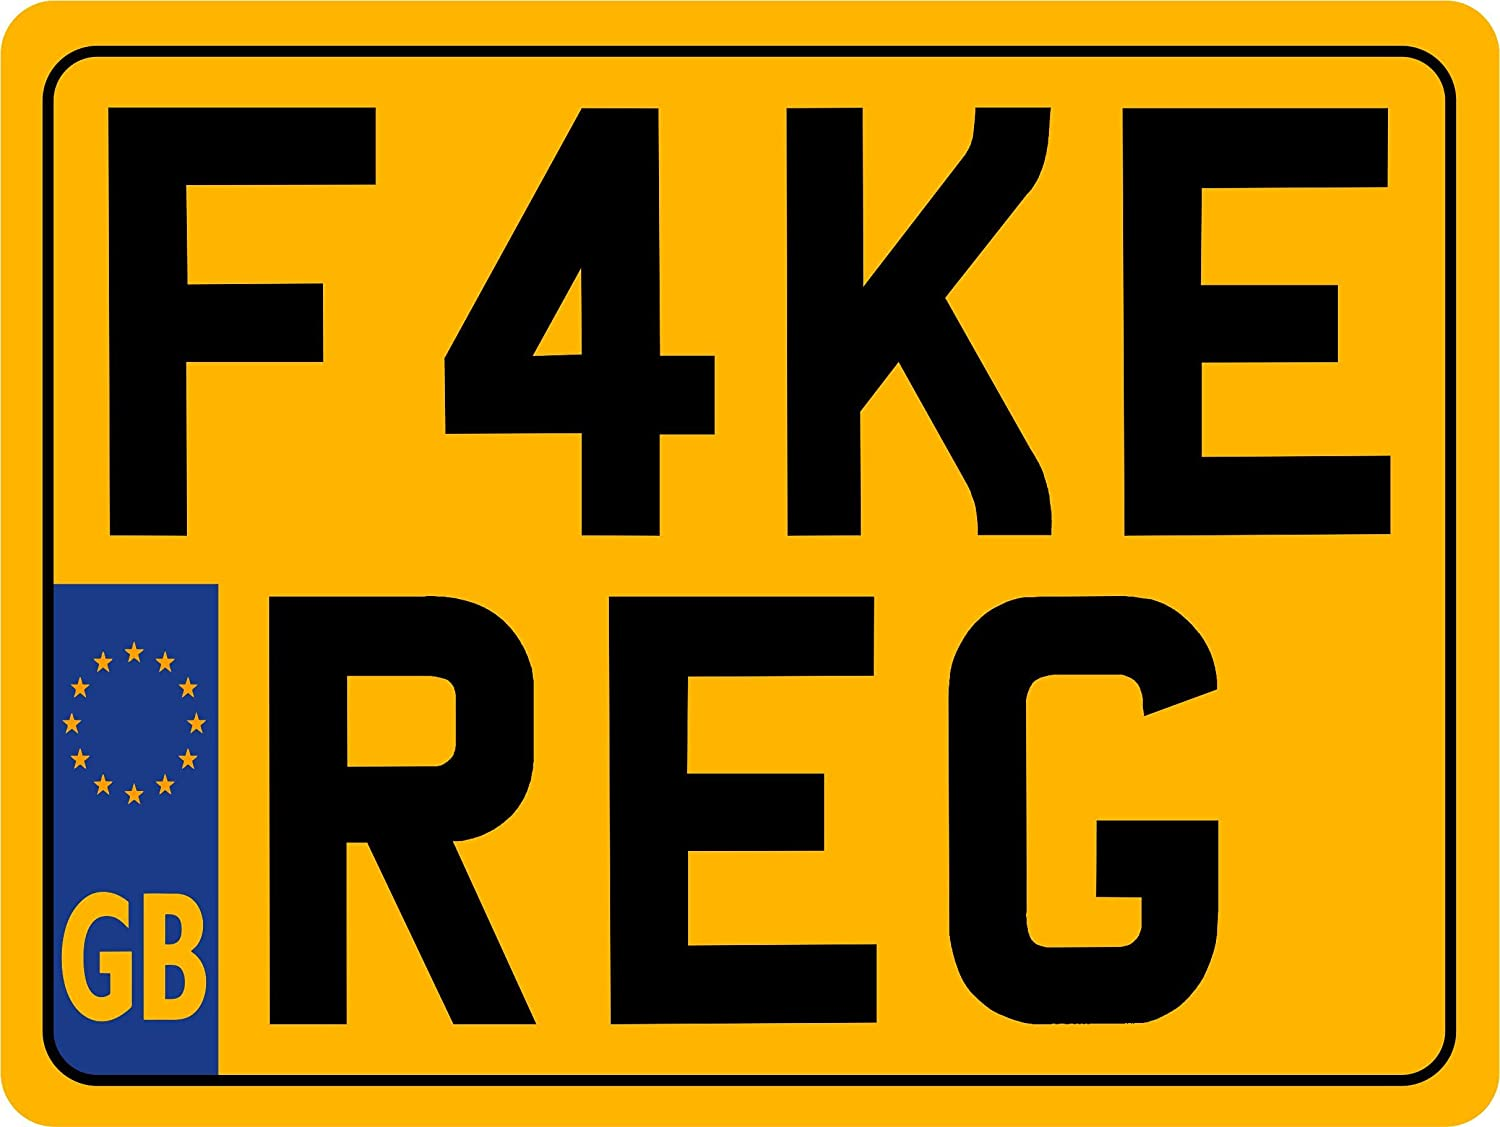 with border and free bottom line // tag line text REAR NUMBER PLATE for Motorcycle SHOW PLATES choice of sizes 9 x 7 // 8 x 6 // 7 x 7 // 7 x 5 // 6 x 5 // 6 x 4 not road use legal for motorcycle motor cycle motorbike bike trike scooter moped quad or quadb